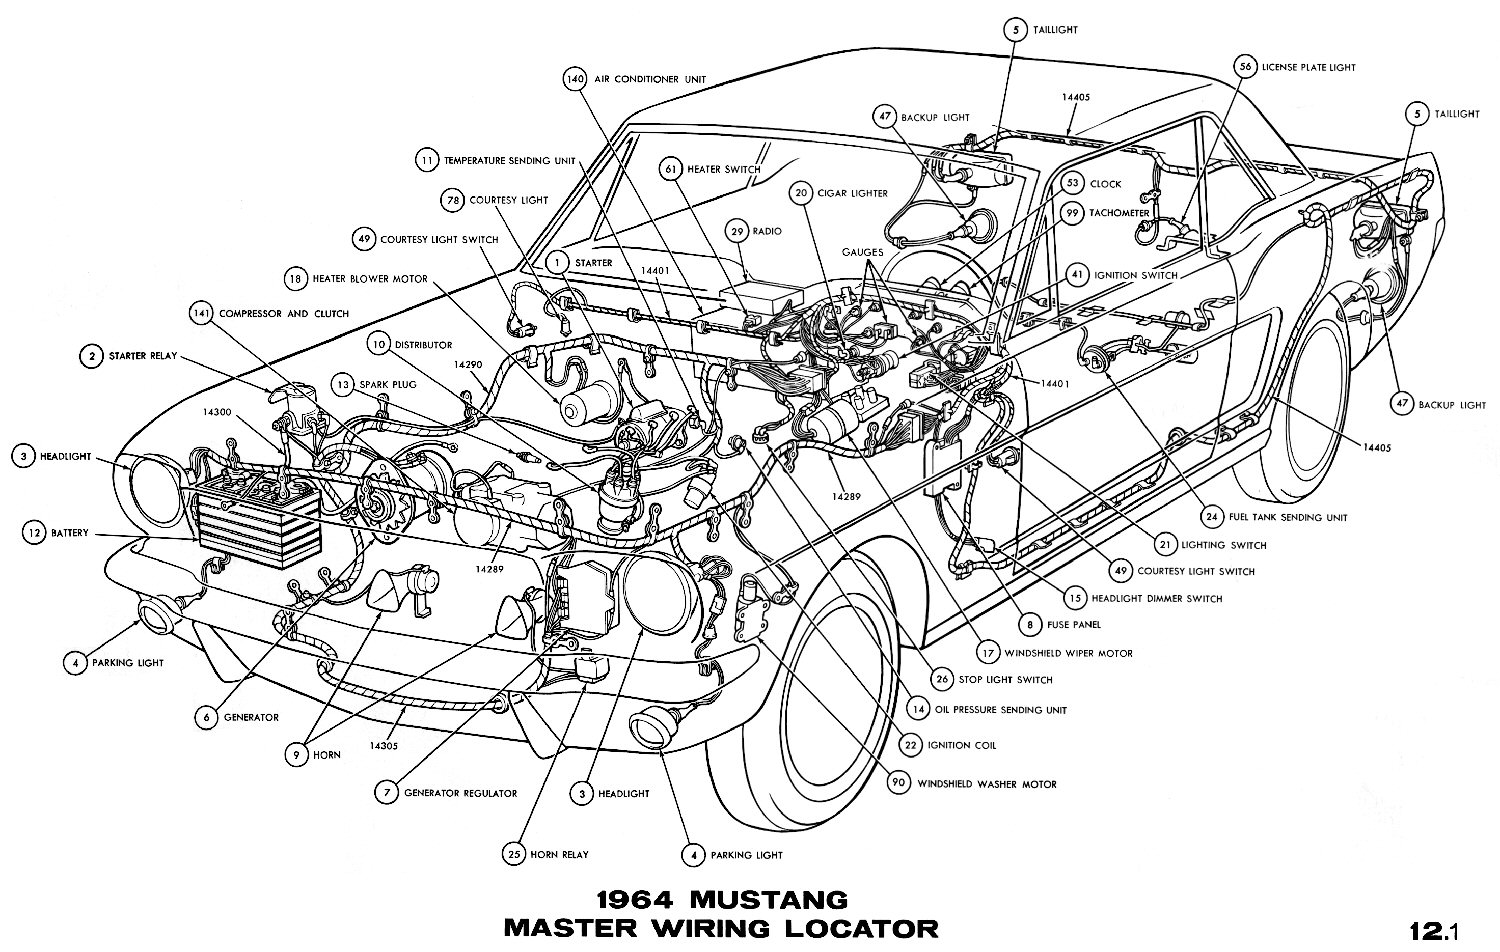 87 mustang vacuum diagram averagejoe - average joe restoration